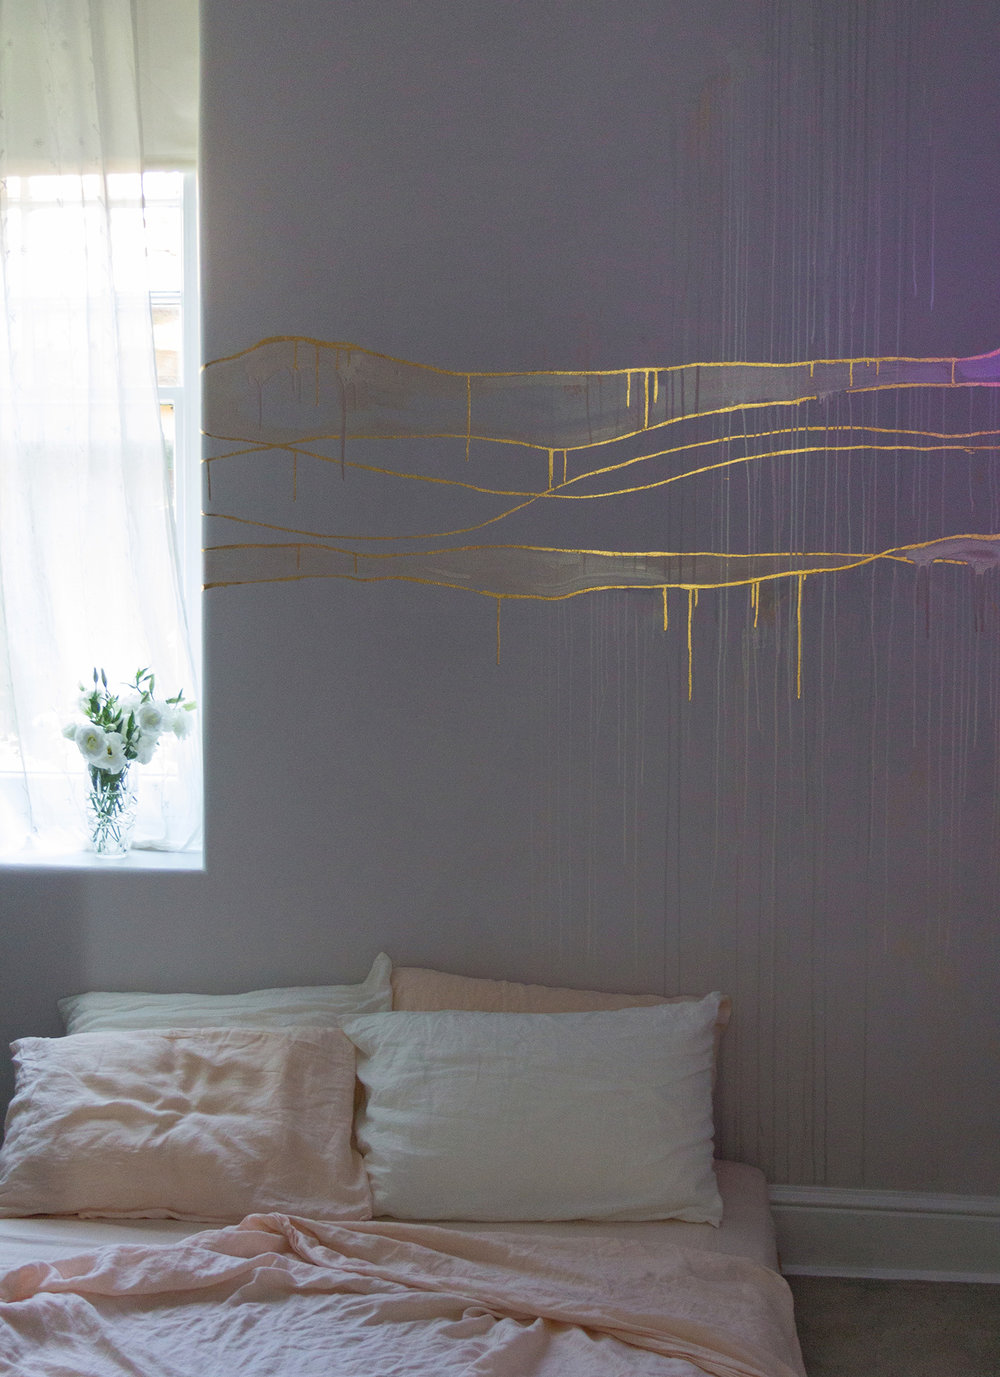 Gold leaf feature wall in cosy bedroom, the metallic paint is lit up with coloured lights.